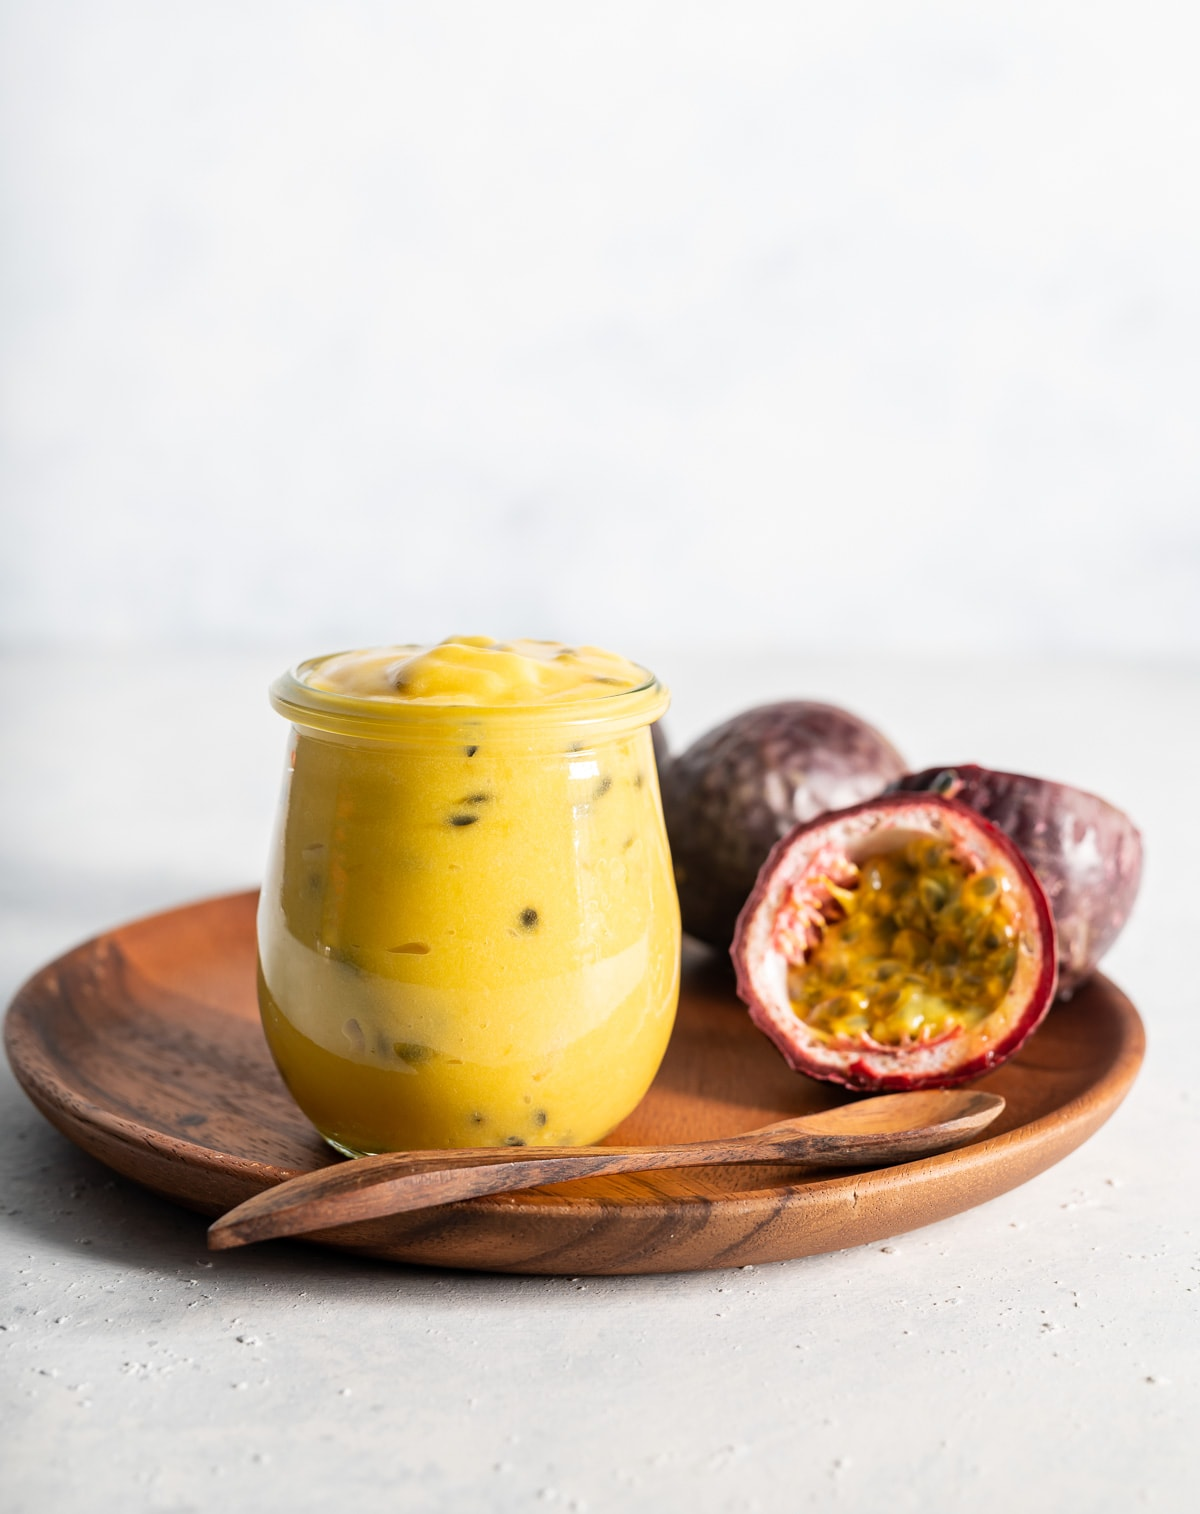 yellow passion fruit curd in a jar with fresh passion fruits cut in half brown plate